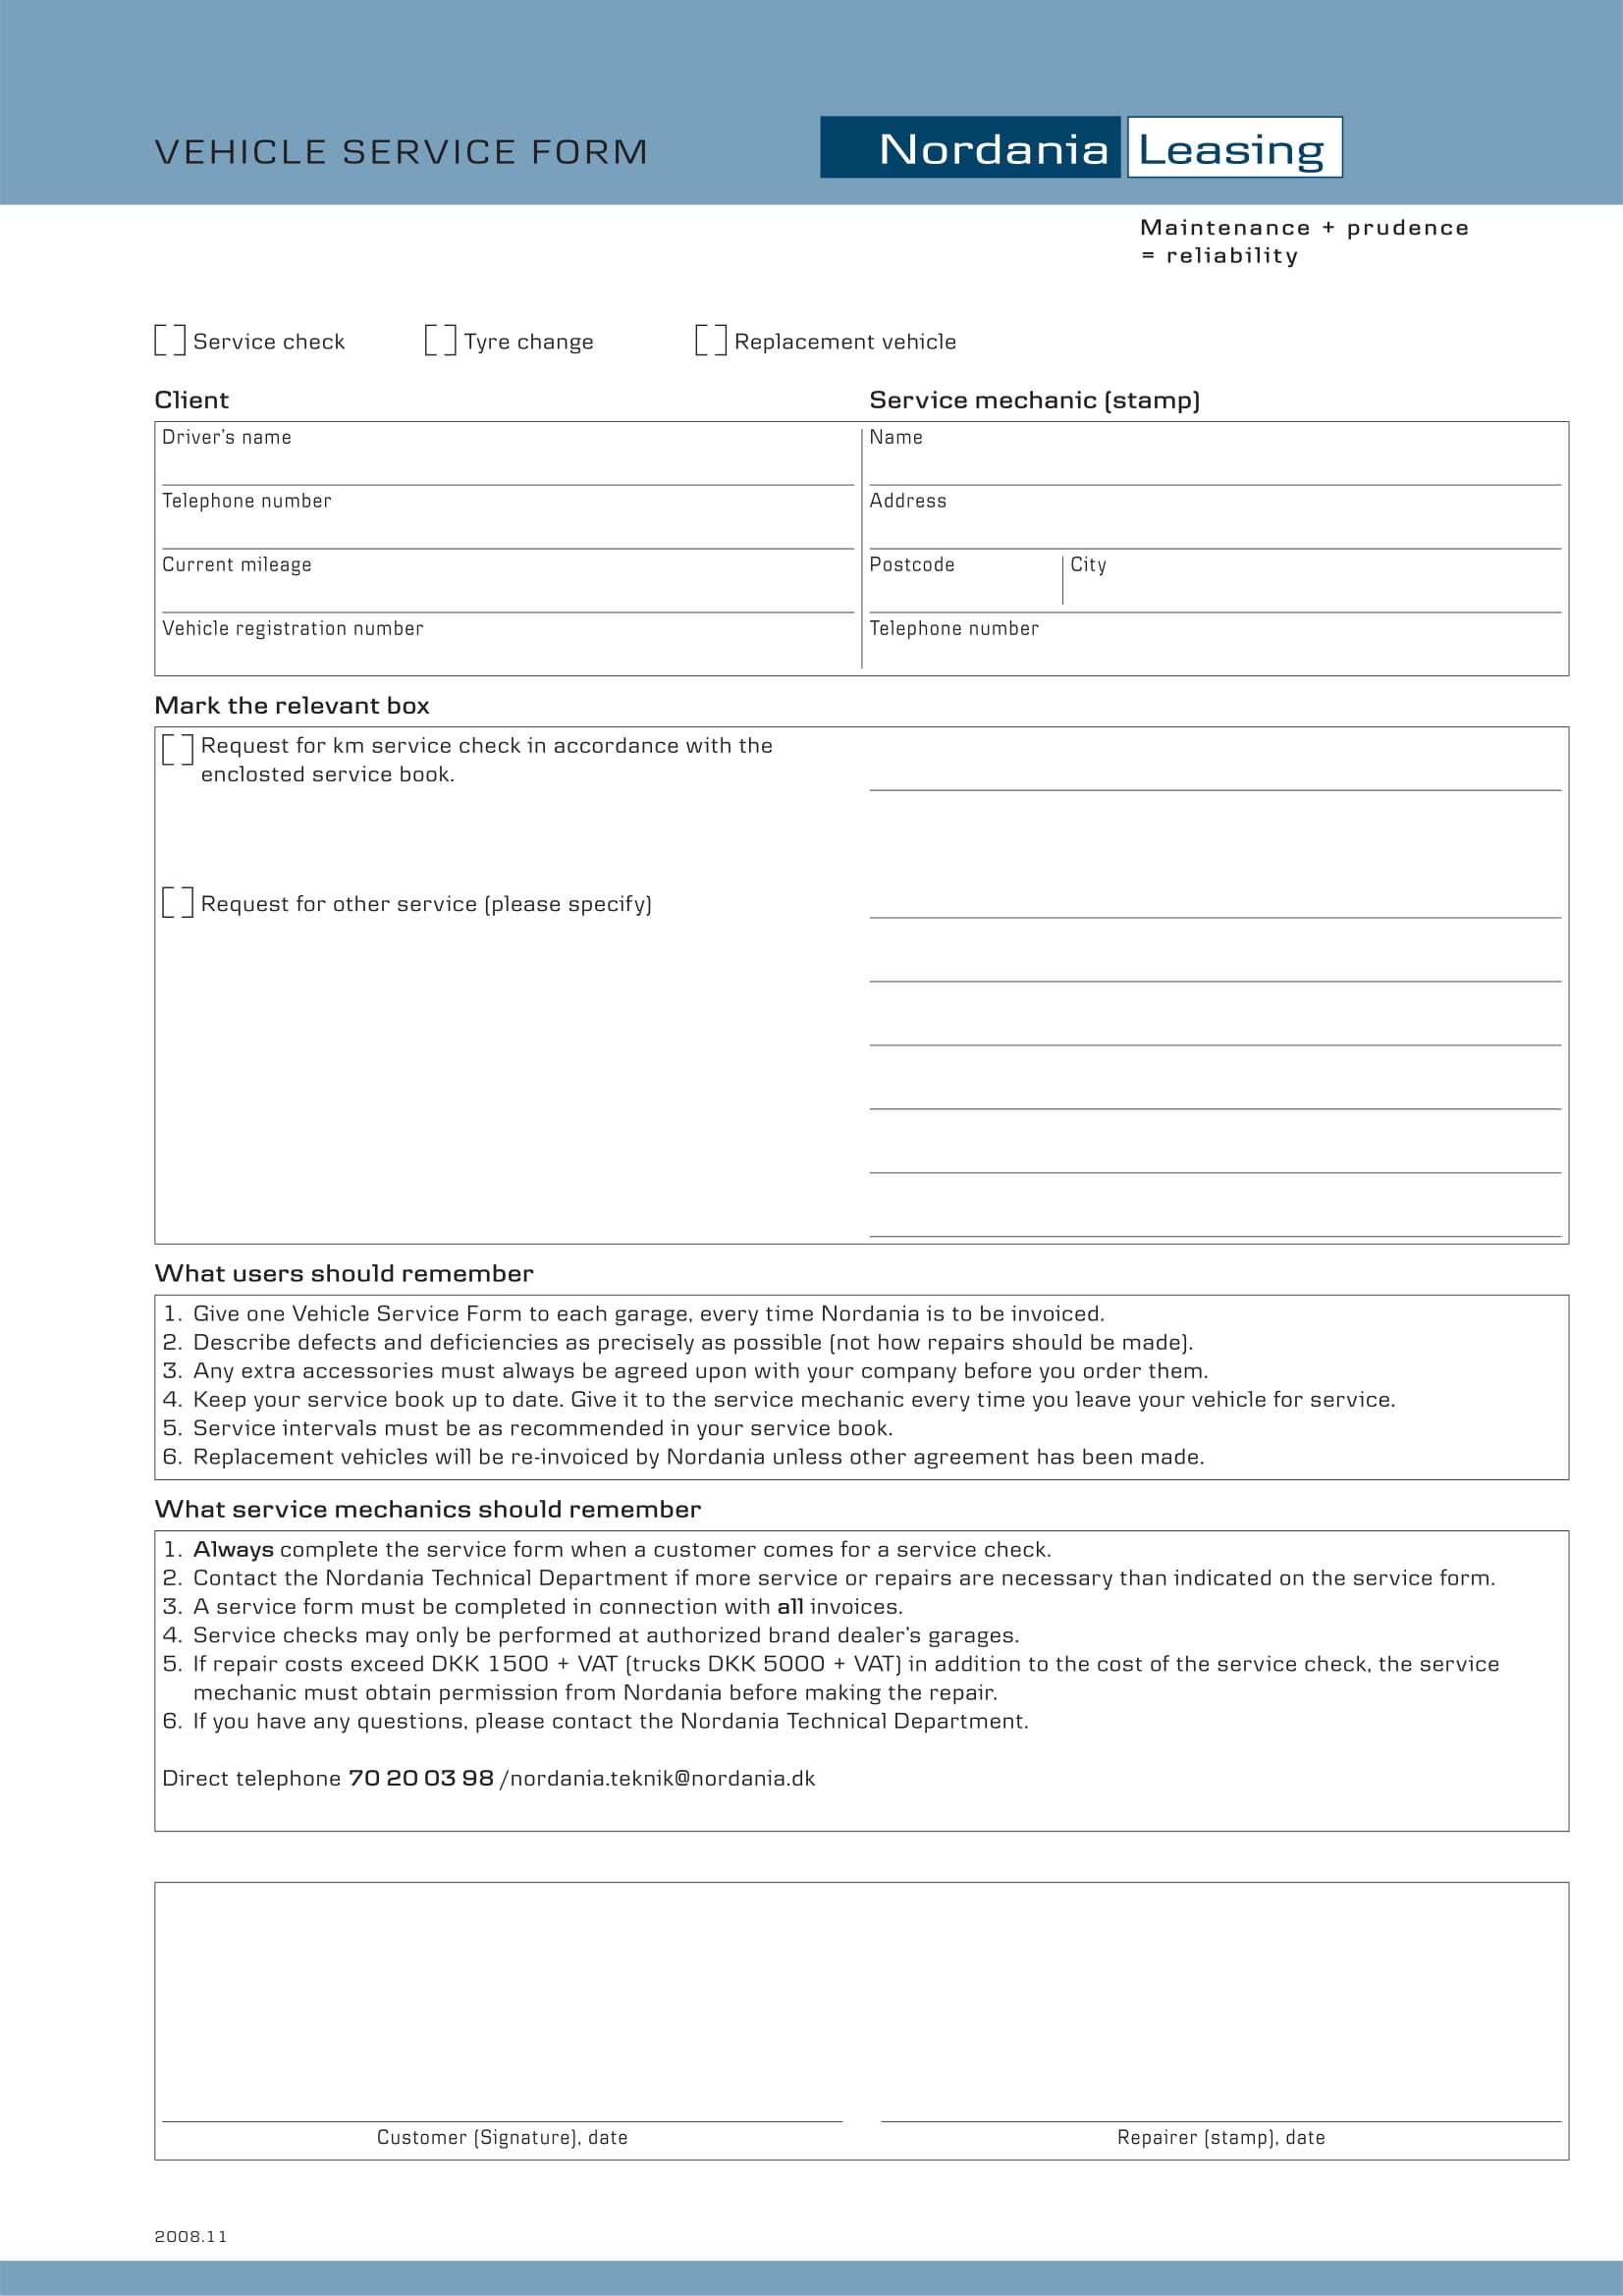 sample vehicle service form download 1